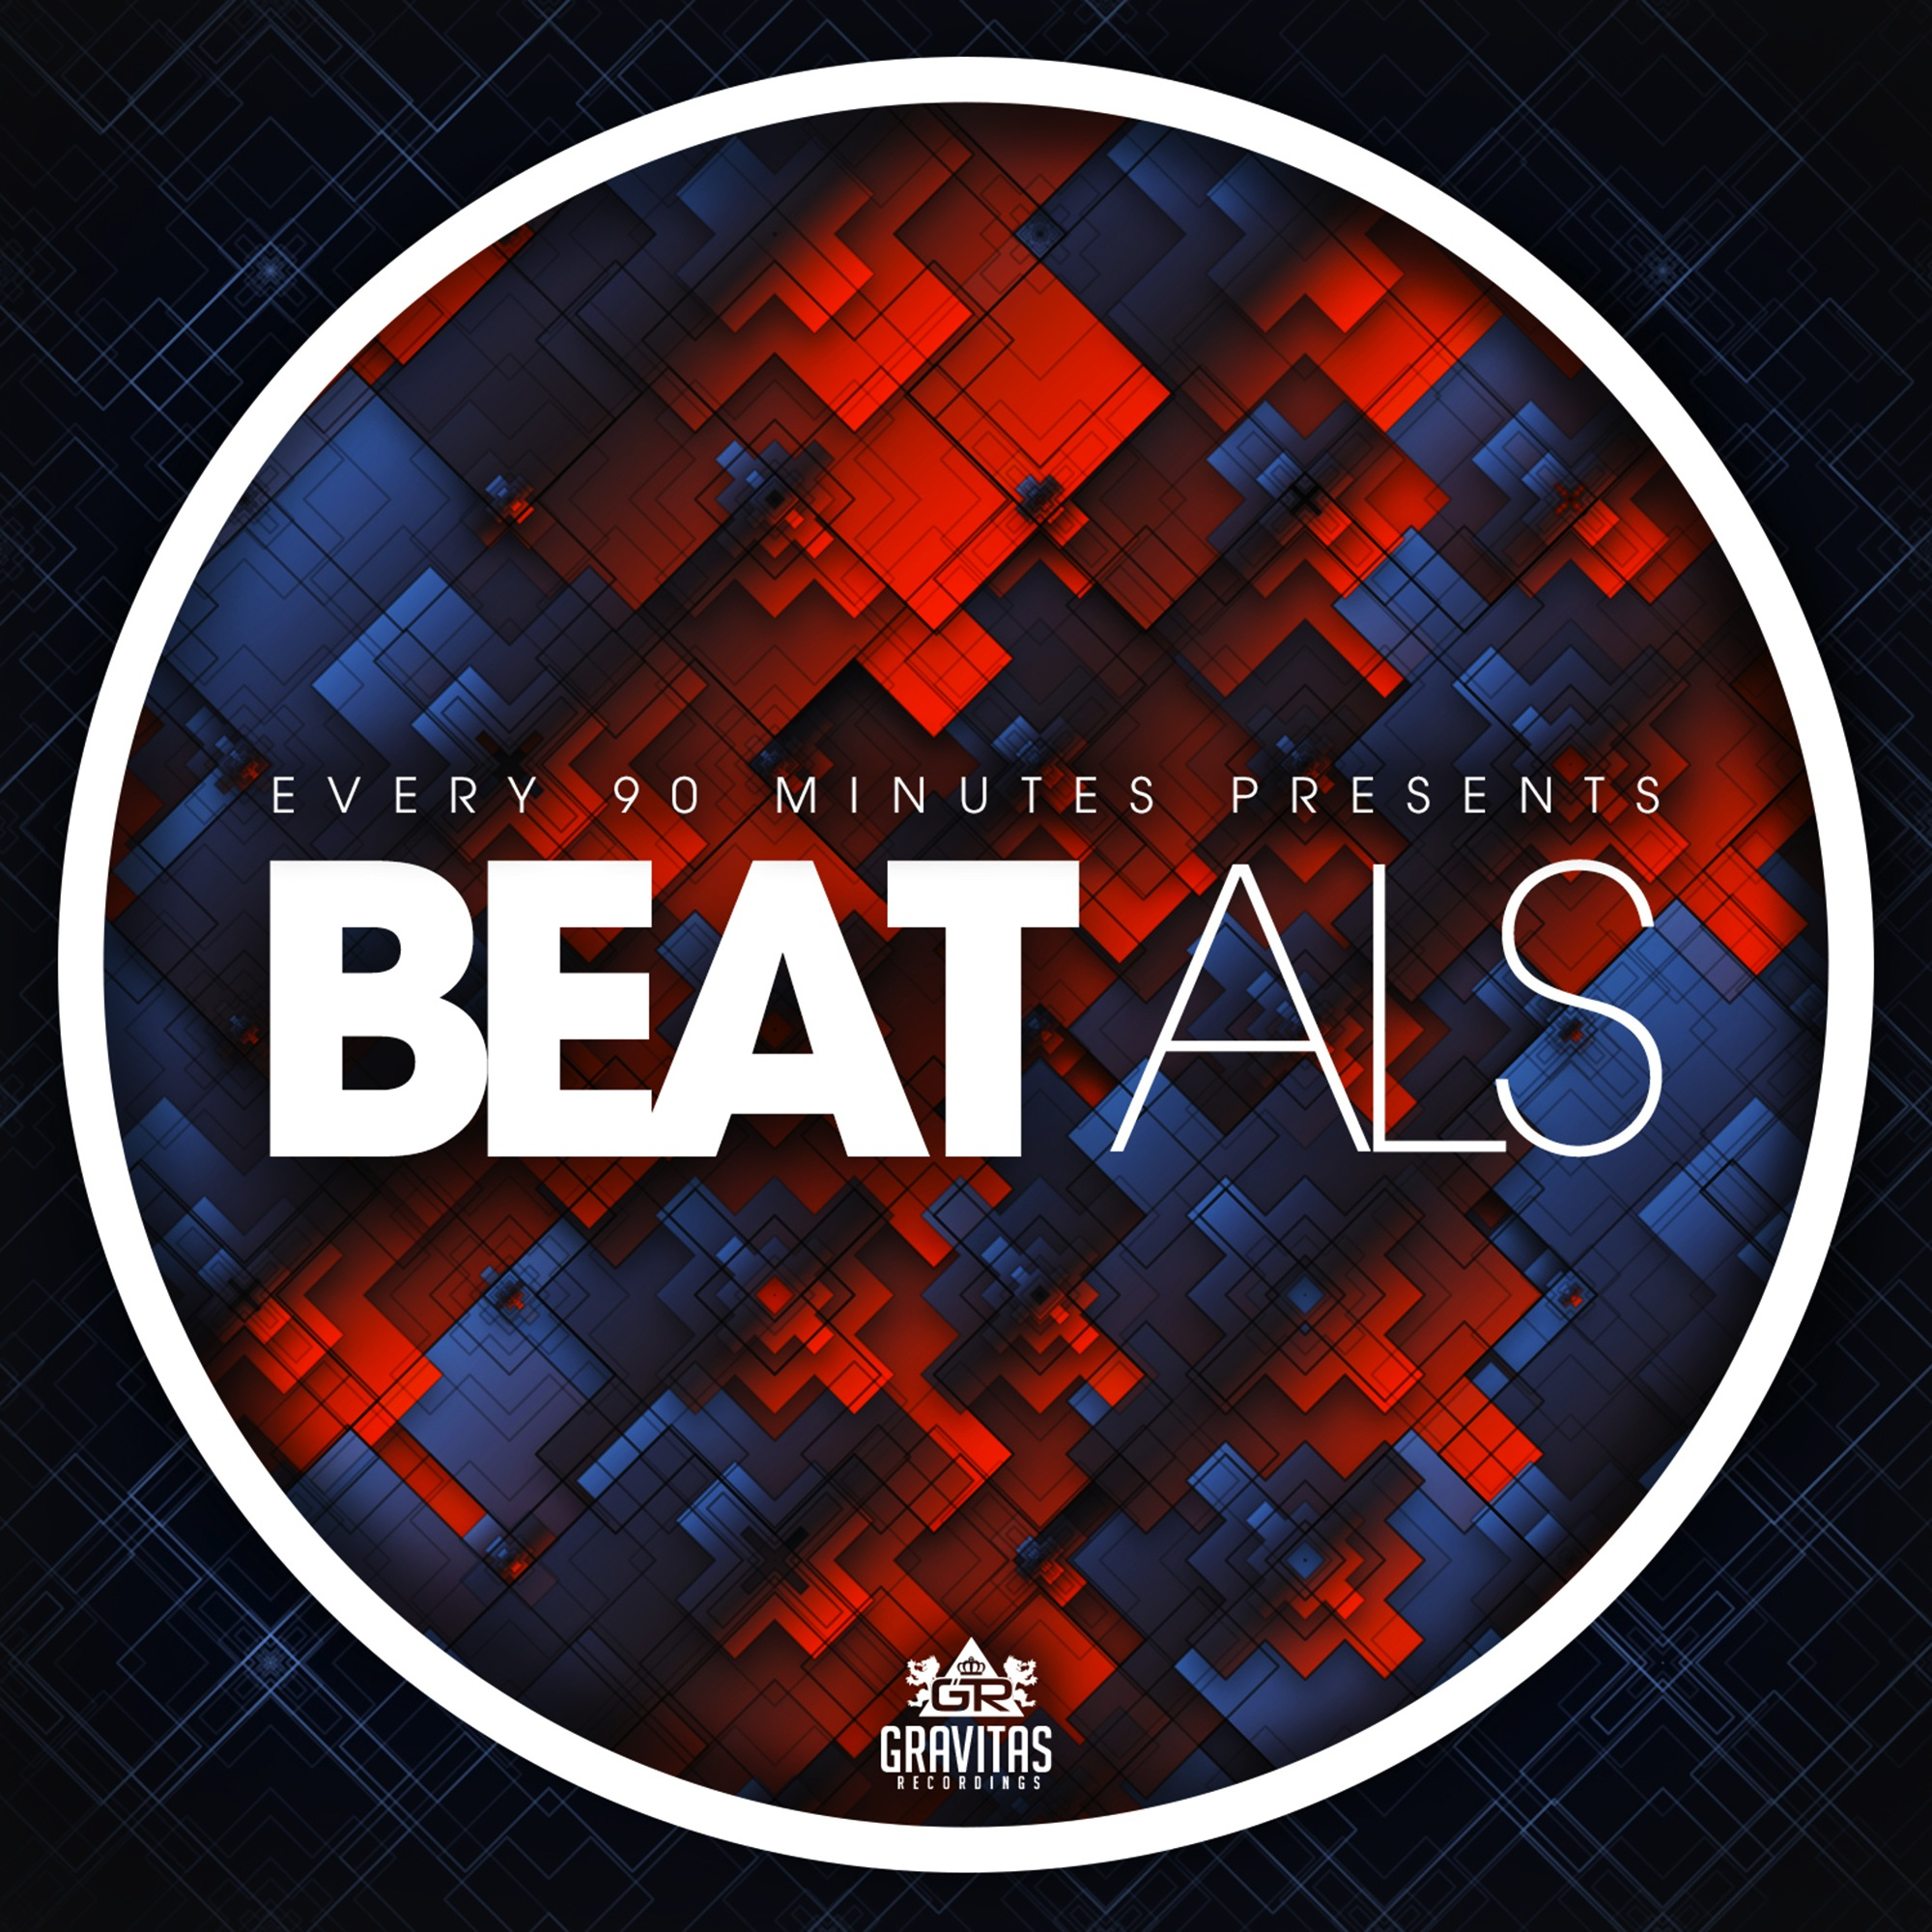 Beat ALS Compilation Album Cover